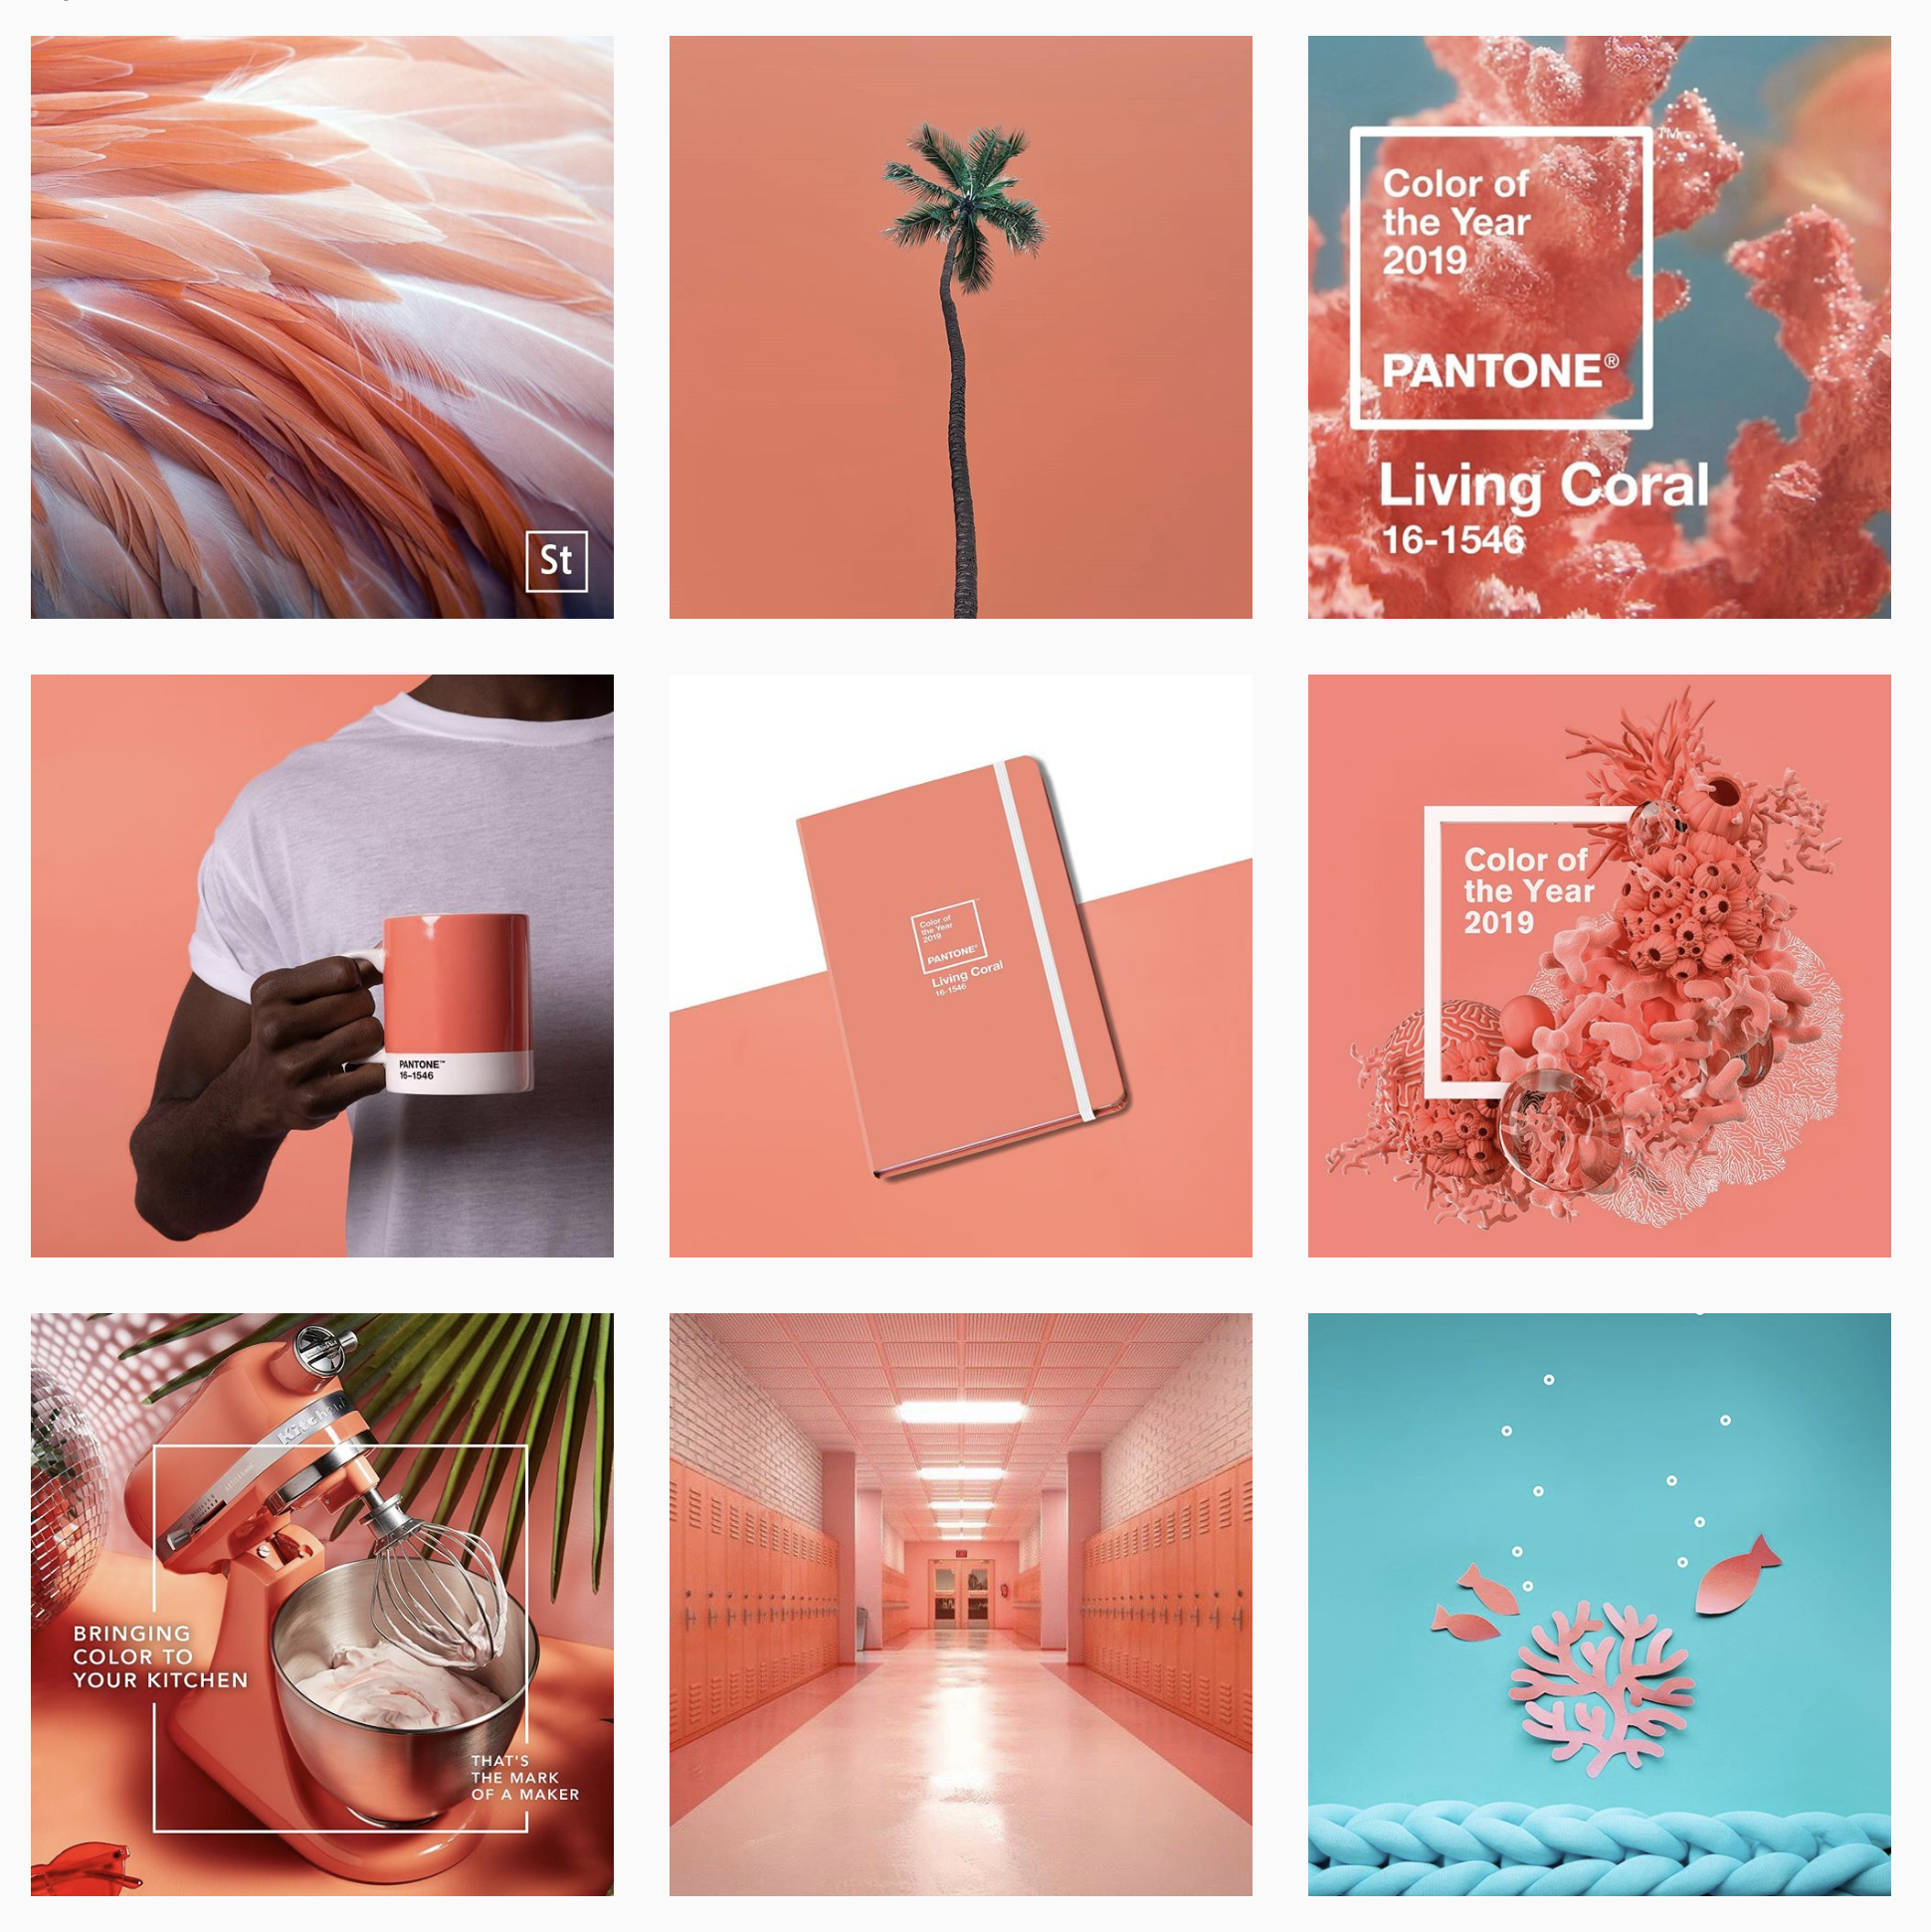 Collage of top posts on Instagram featuring Pantone Colour of the Year 2019 Living Coral